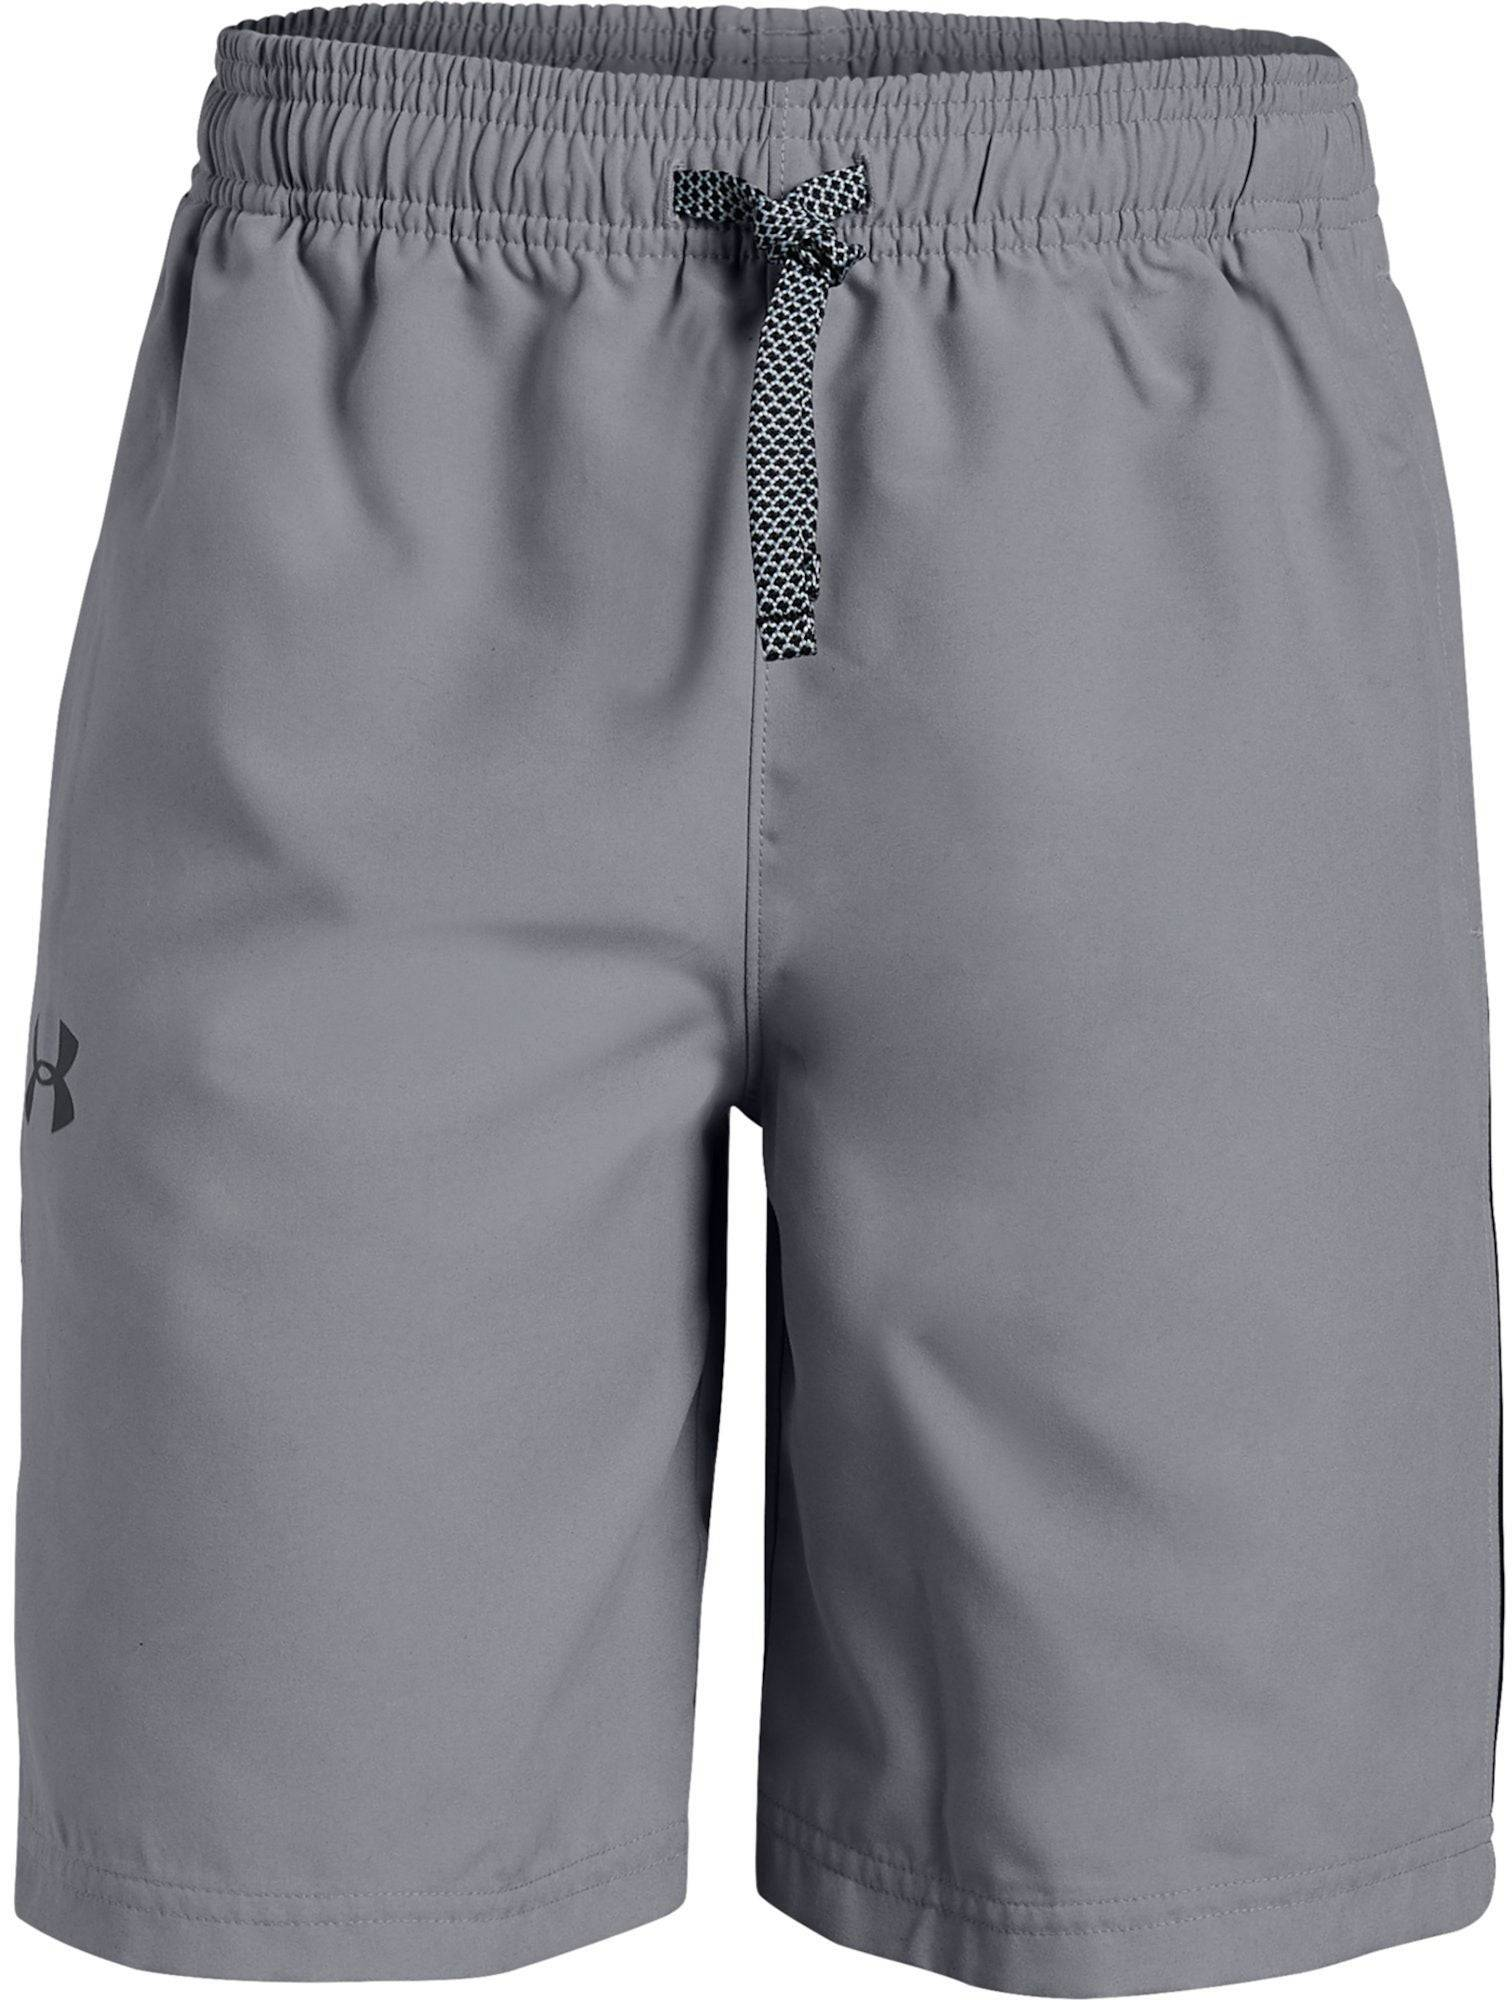 Under Armour UA Woven Graphic Shorts, Steel XS